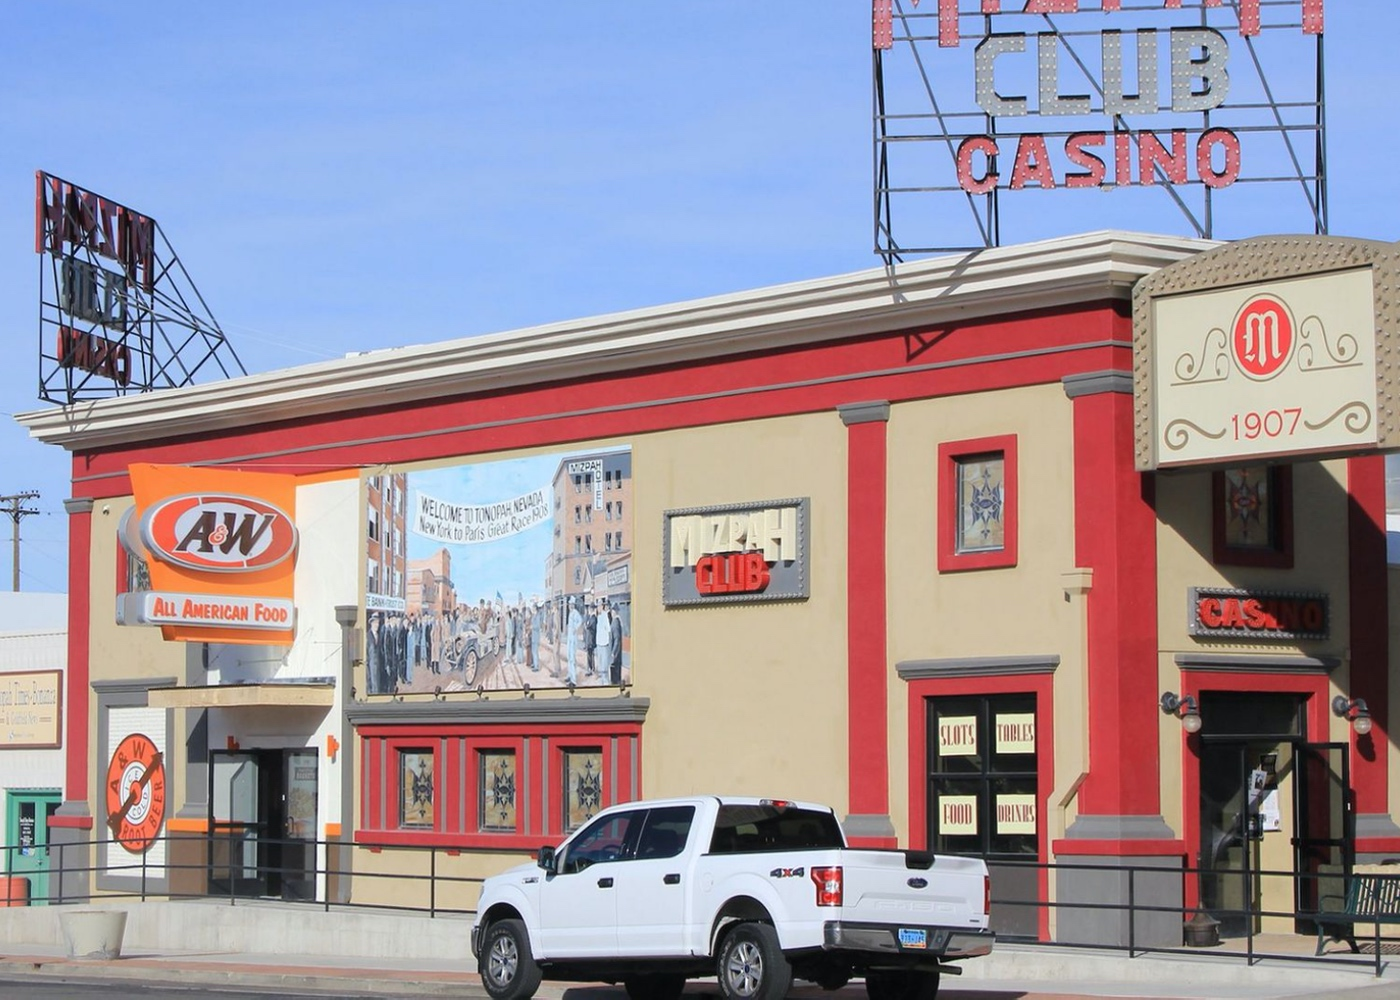 Exterior photo of A&W Restaurant in Tonopah, Nevada